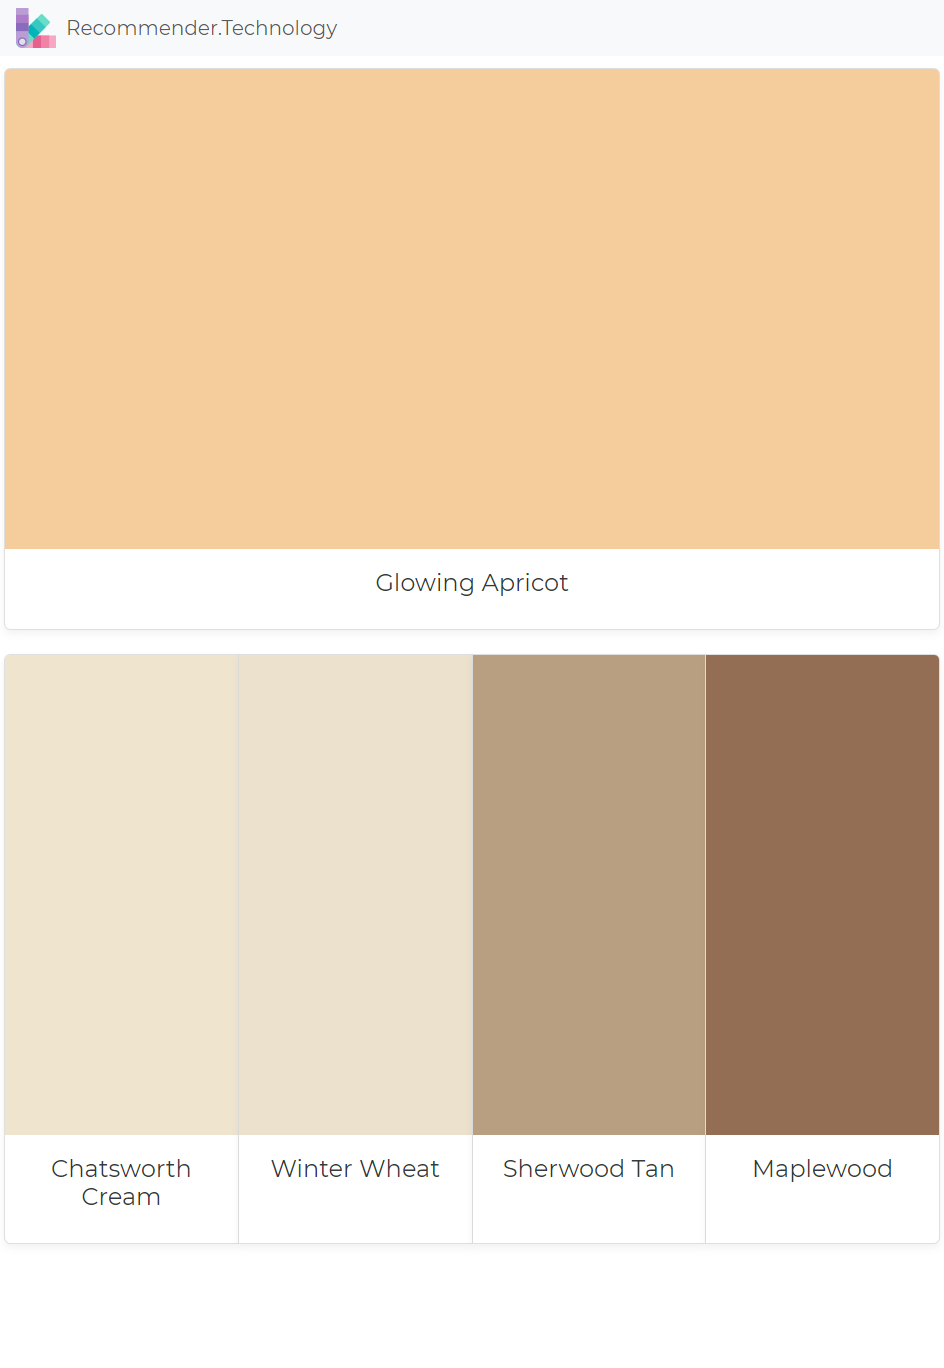 glowing apricot chatsworth cream winter wheat sherwood tan maplewood benjamin moore colors paint colors benjamin moore paint color palettes benjamin moore colors paint colors